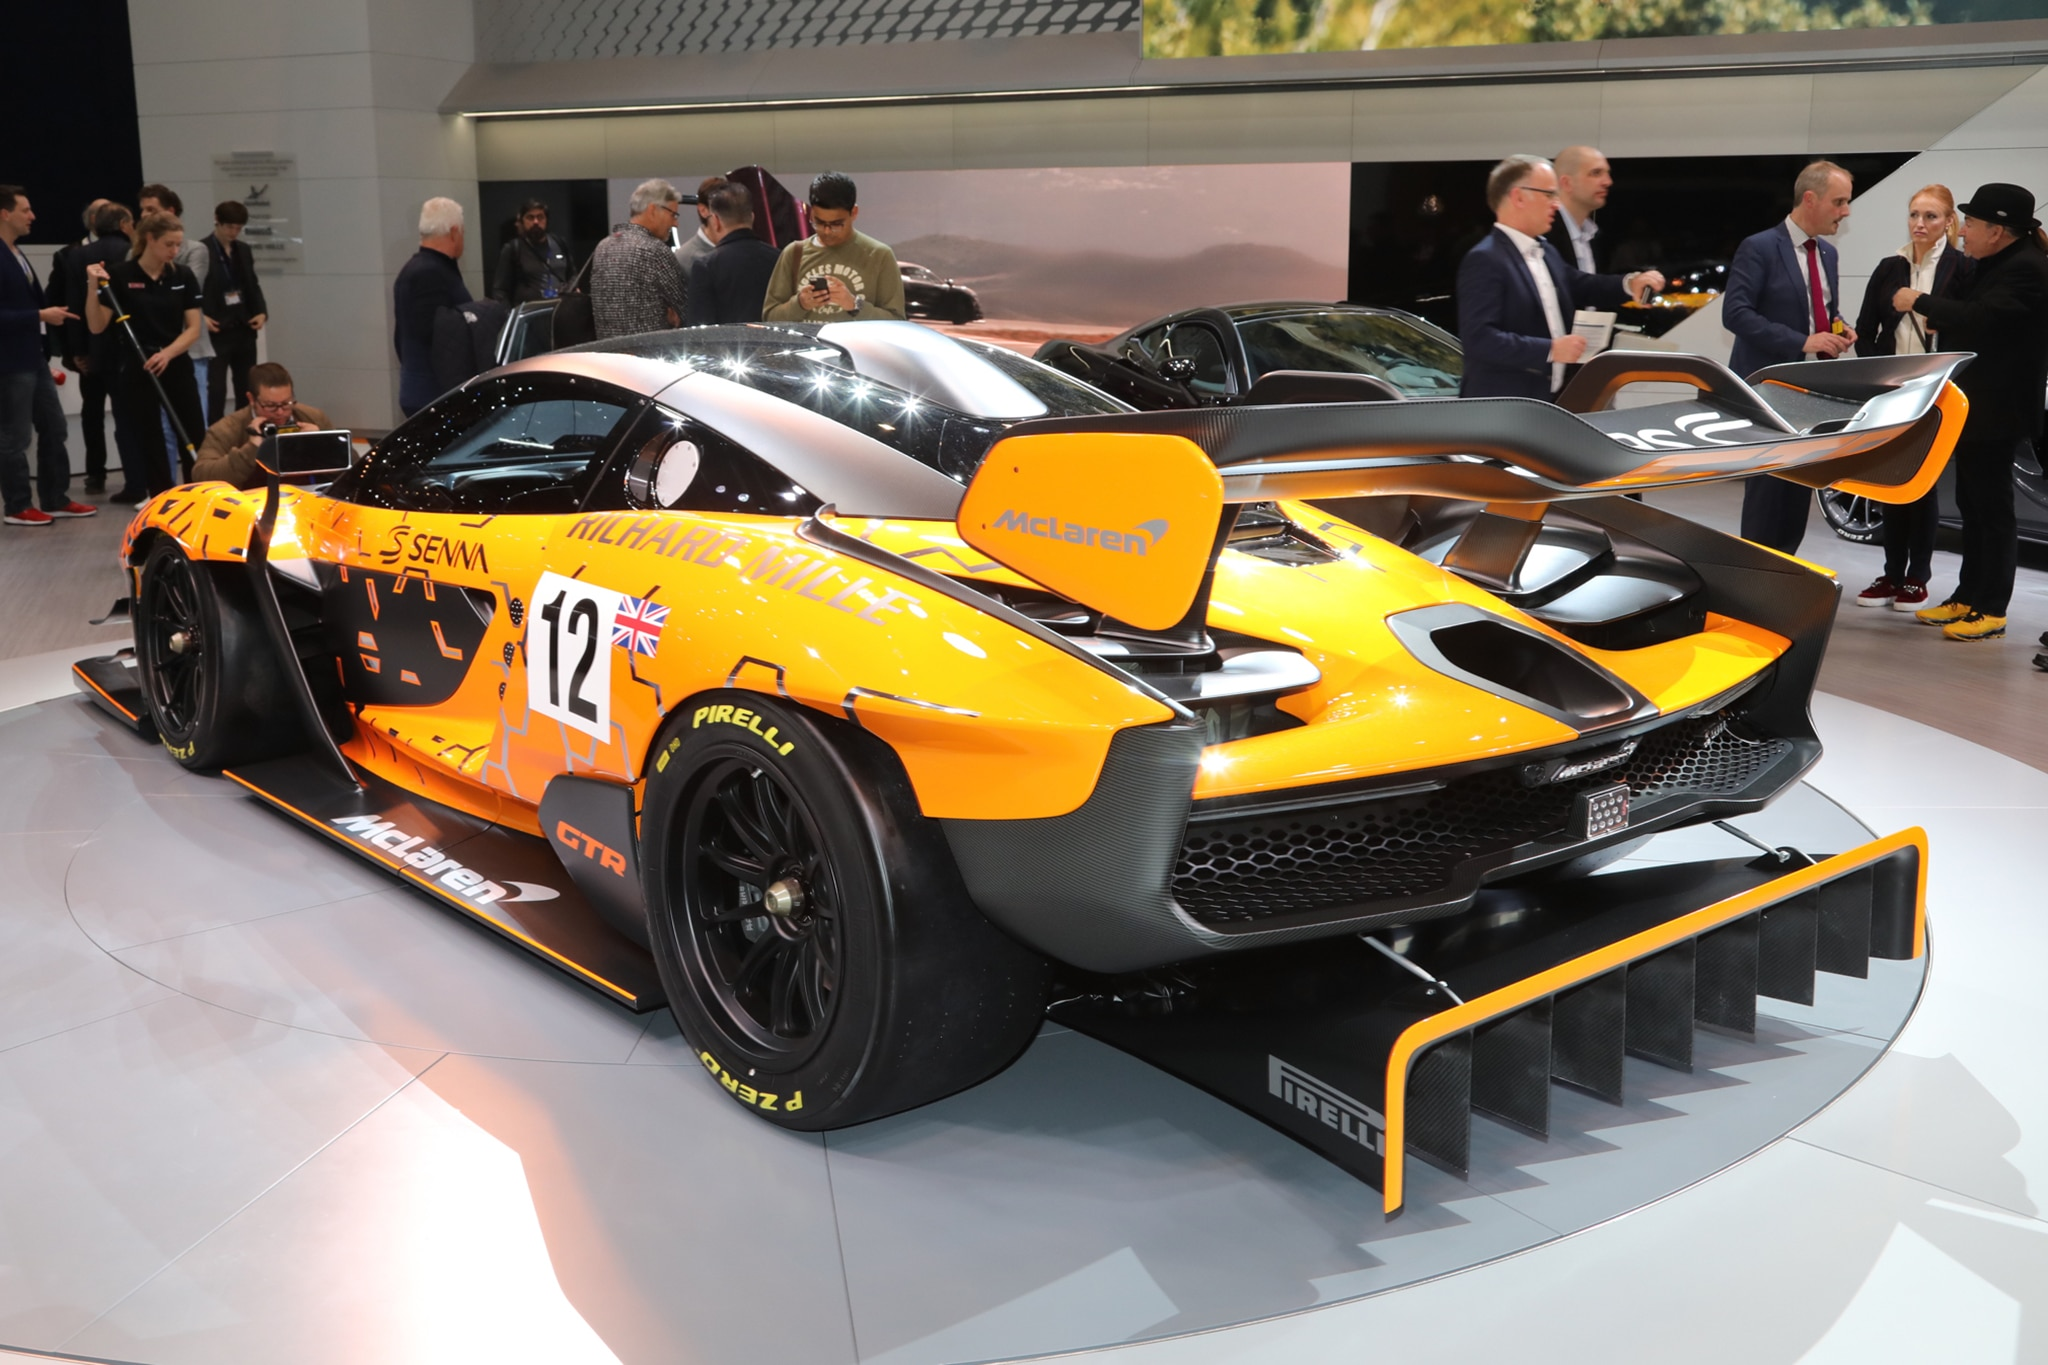 2019 Mclaren Senna Gtr Is The Quickest Mclaren Outside Formula 1